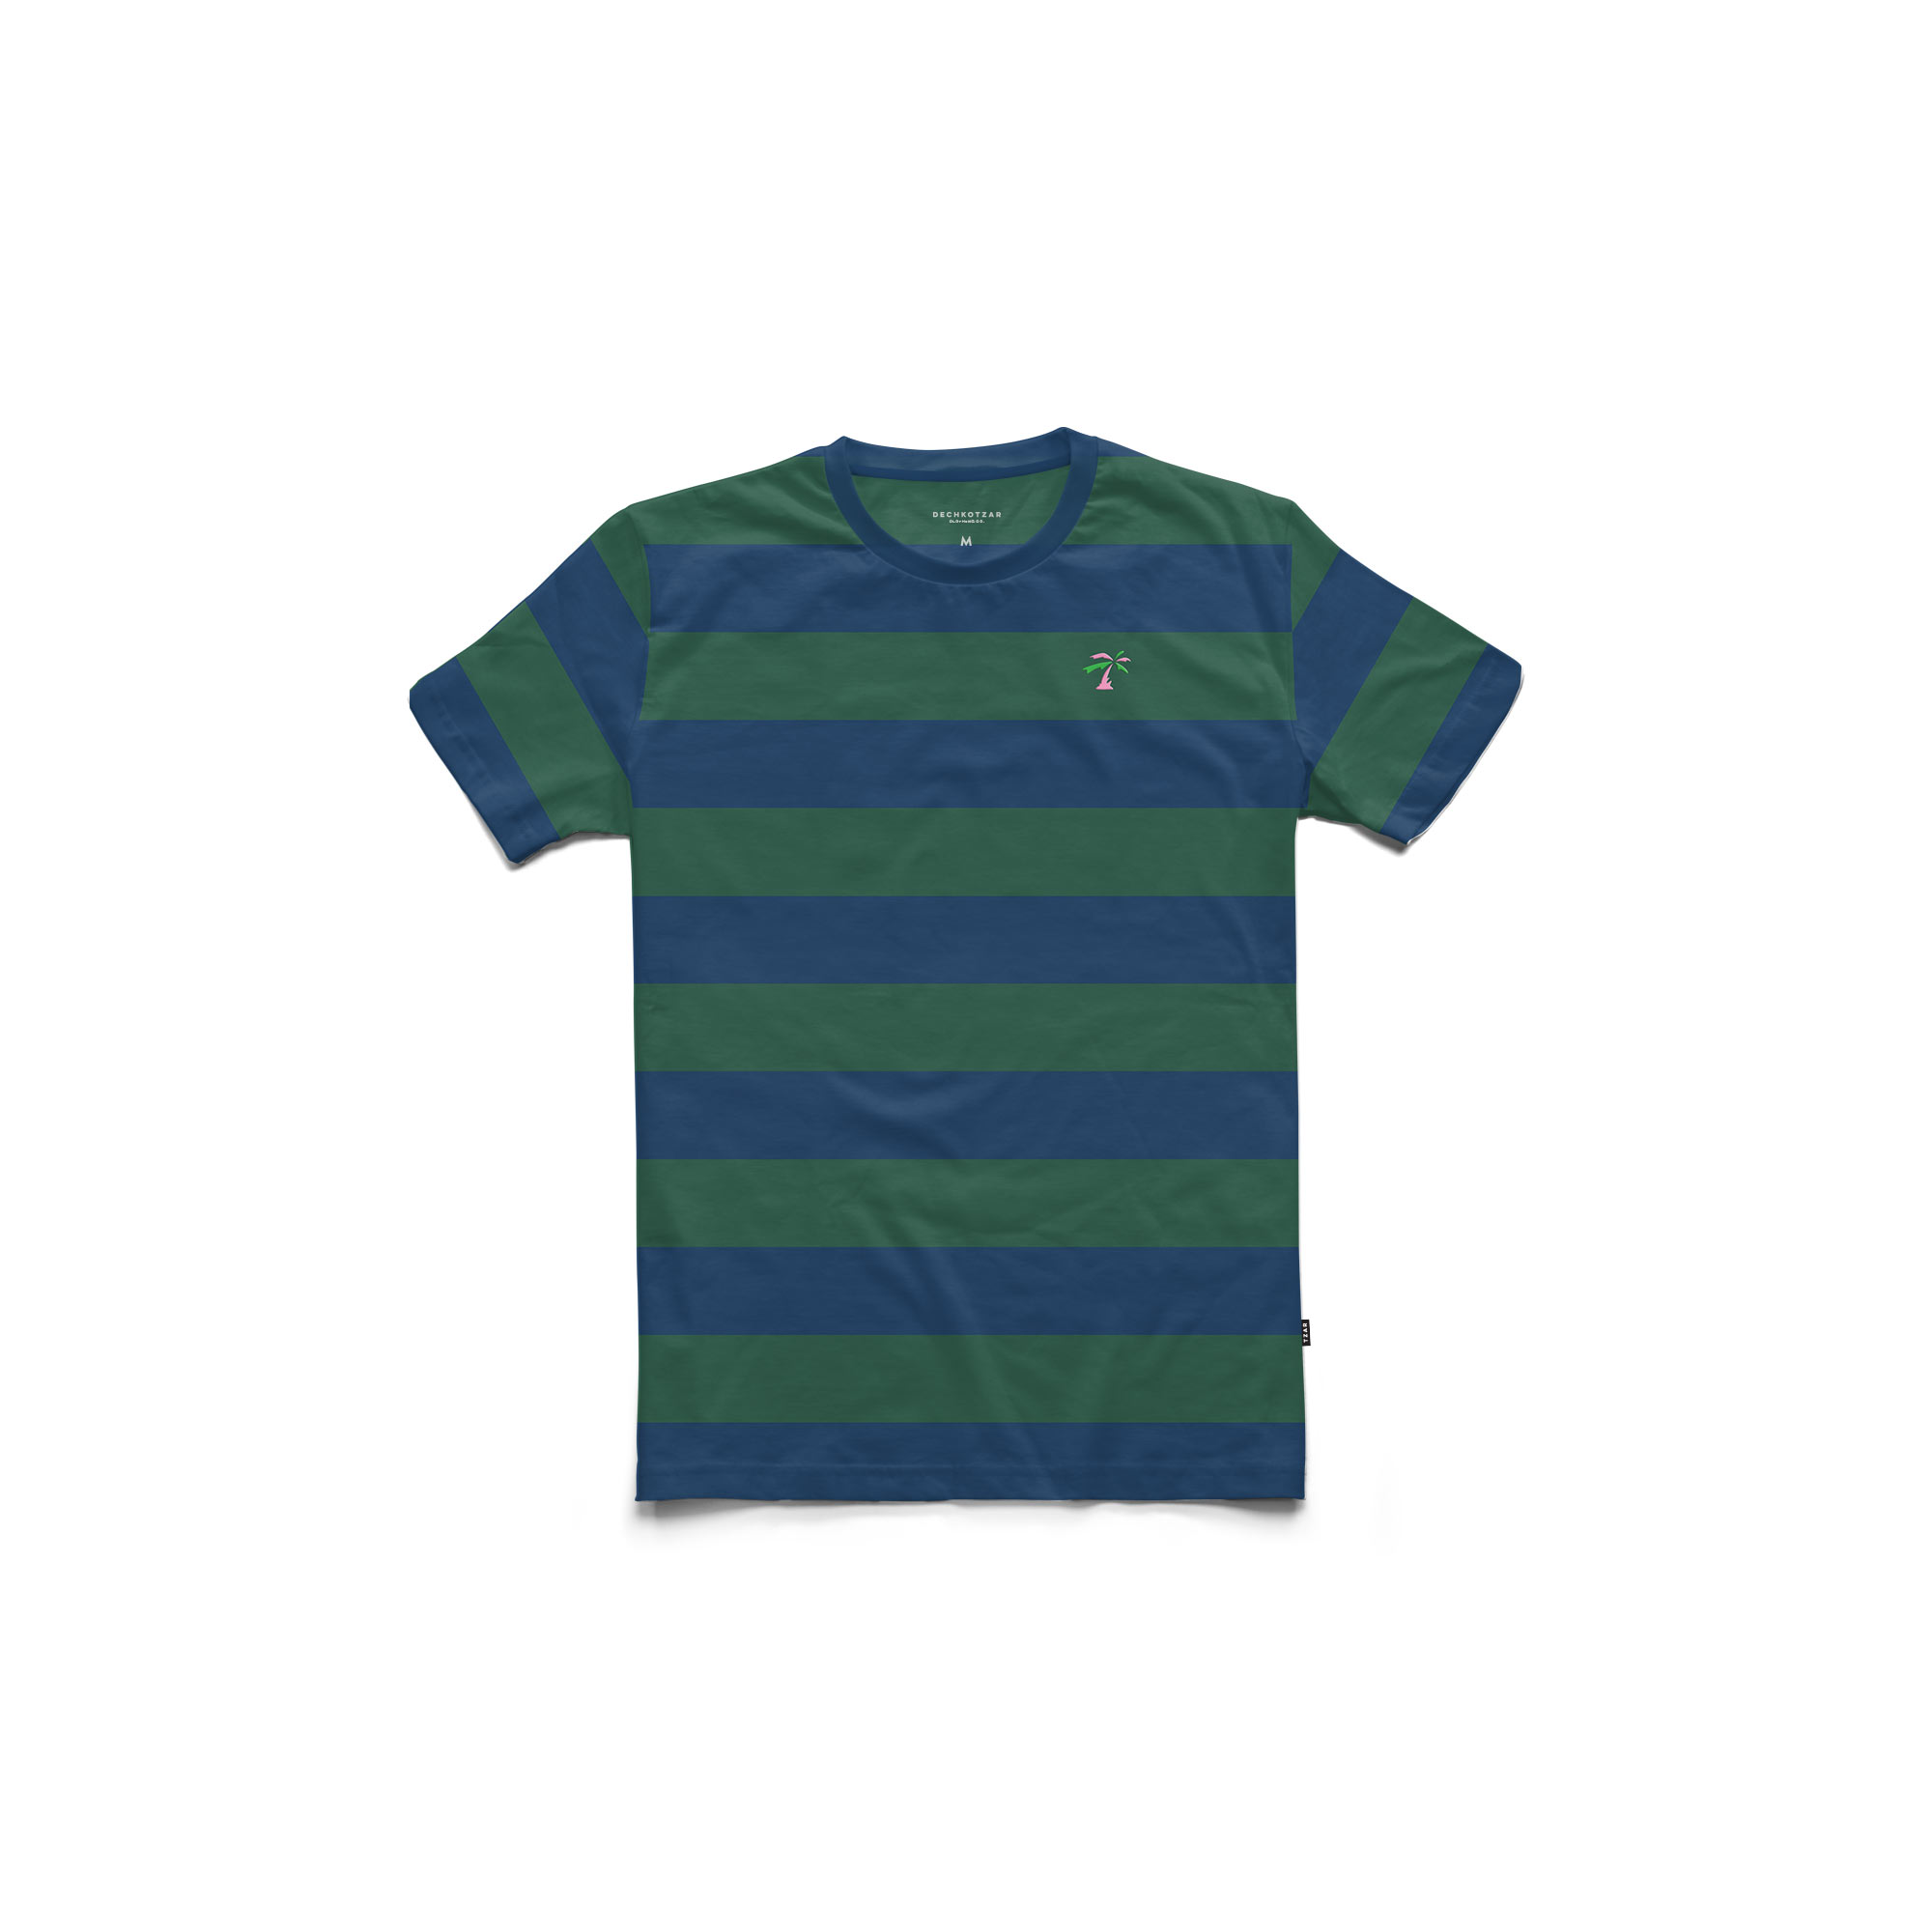 9206c08e0 Palm Stripes, men's t-shirt - DechkoTzar